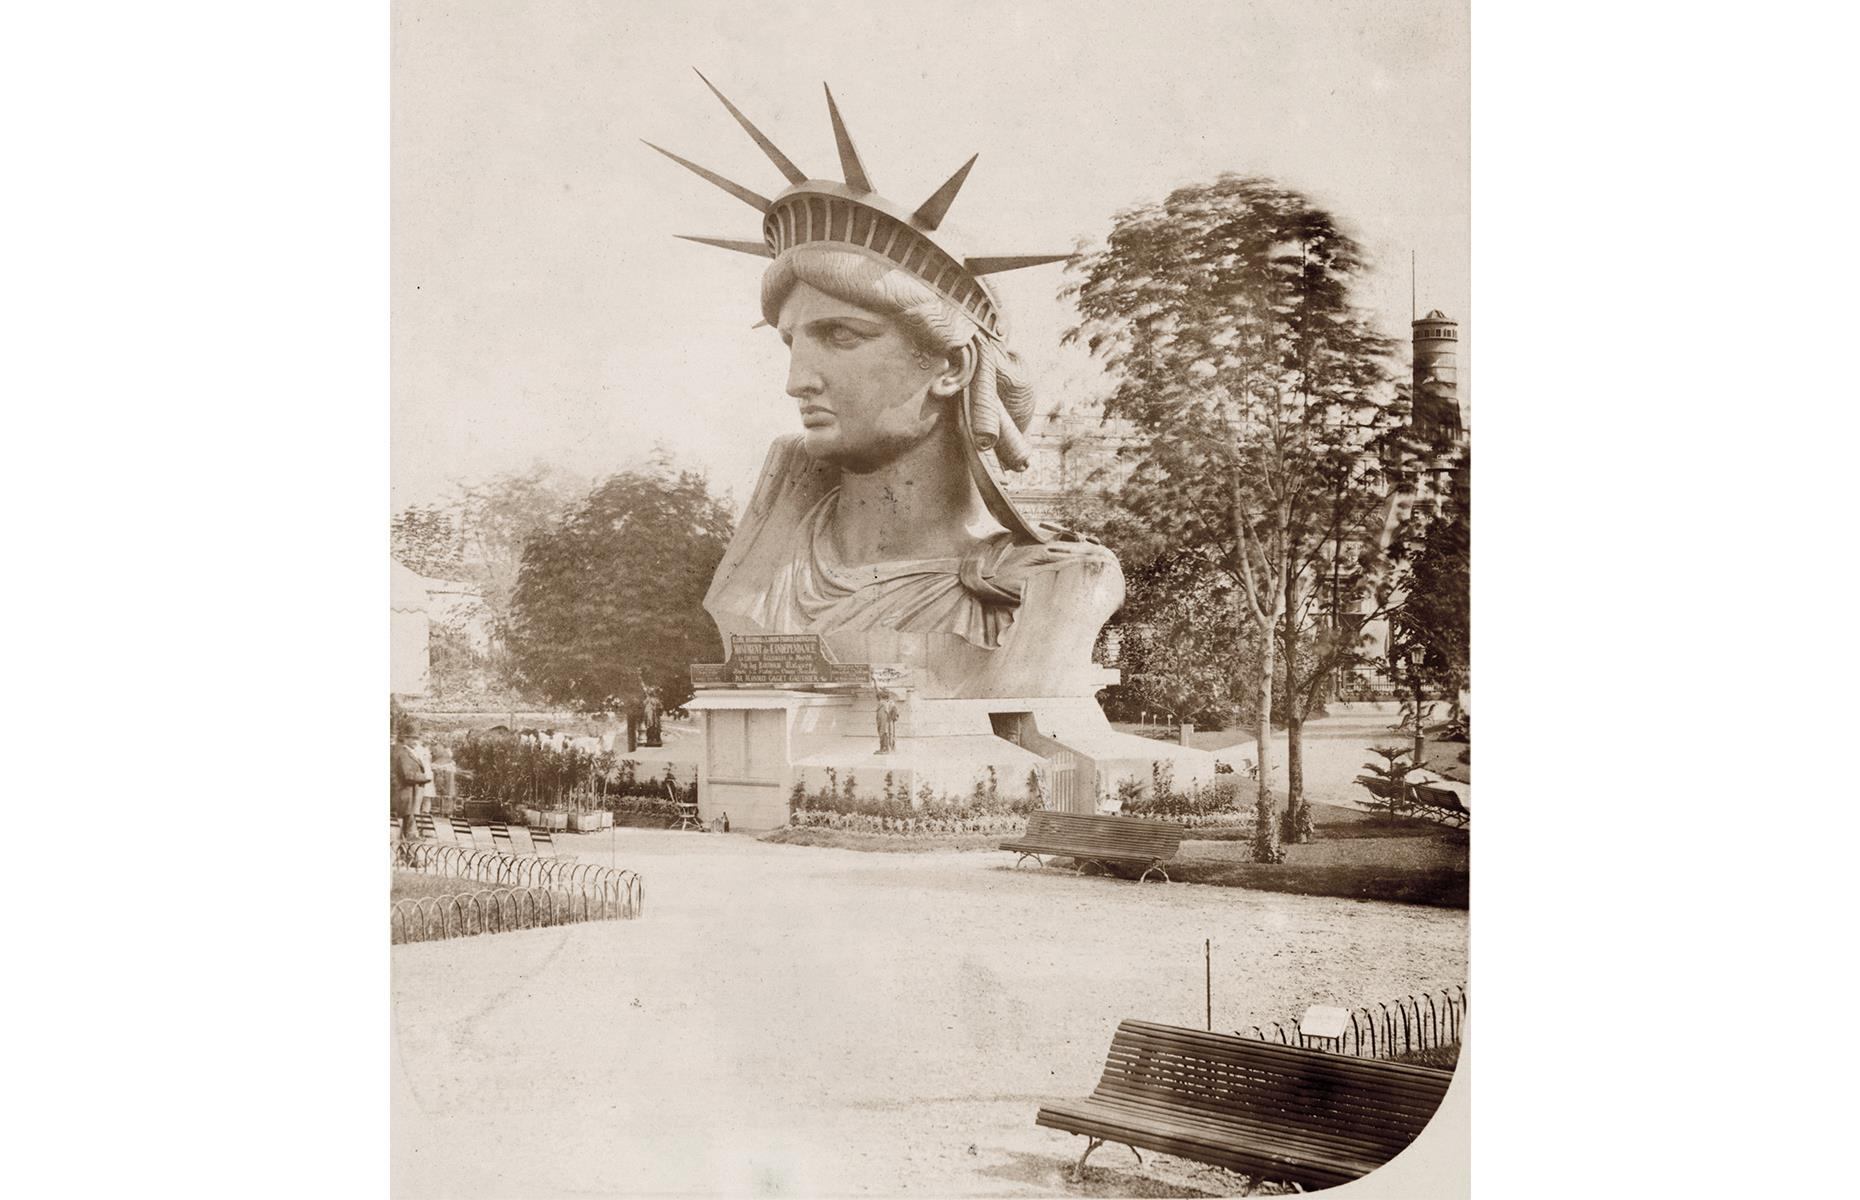 Slide 6 of 51: This famous statue didn't start its life in New York – in fact, it was displayed at the Paris World's Fair in 1878 (pictured), before being given to the US by France in 1886, to commemorate the alliance between the two countries during the American Revolution. A few decades later, the majestic statue, which stands on Liberty Island, had become one of the city's – and world's – best-loved landmarks.